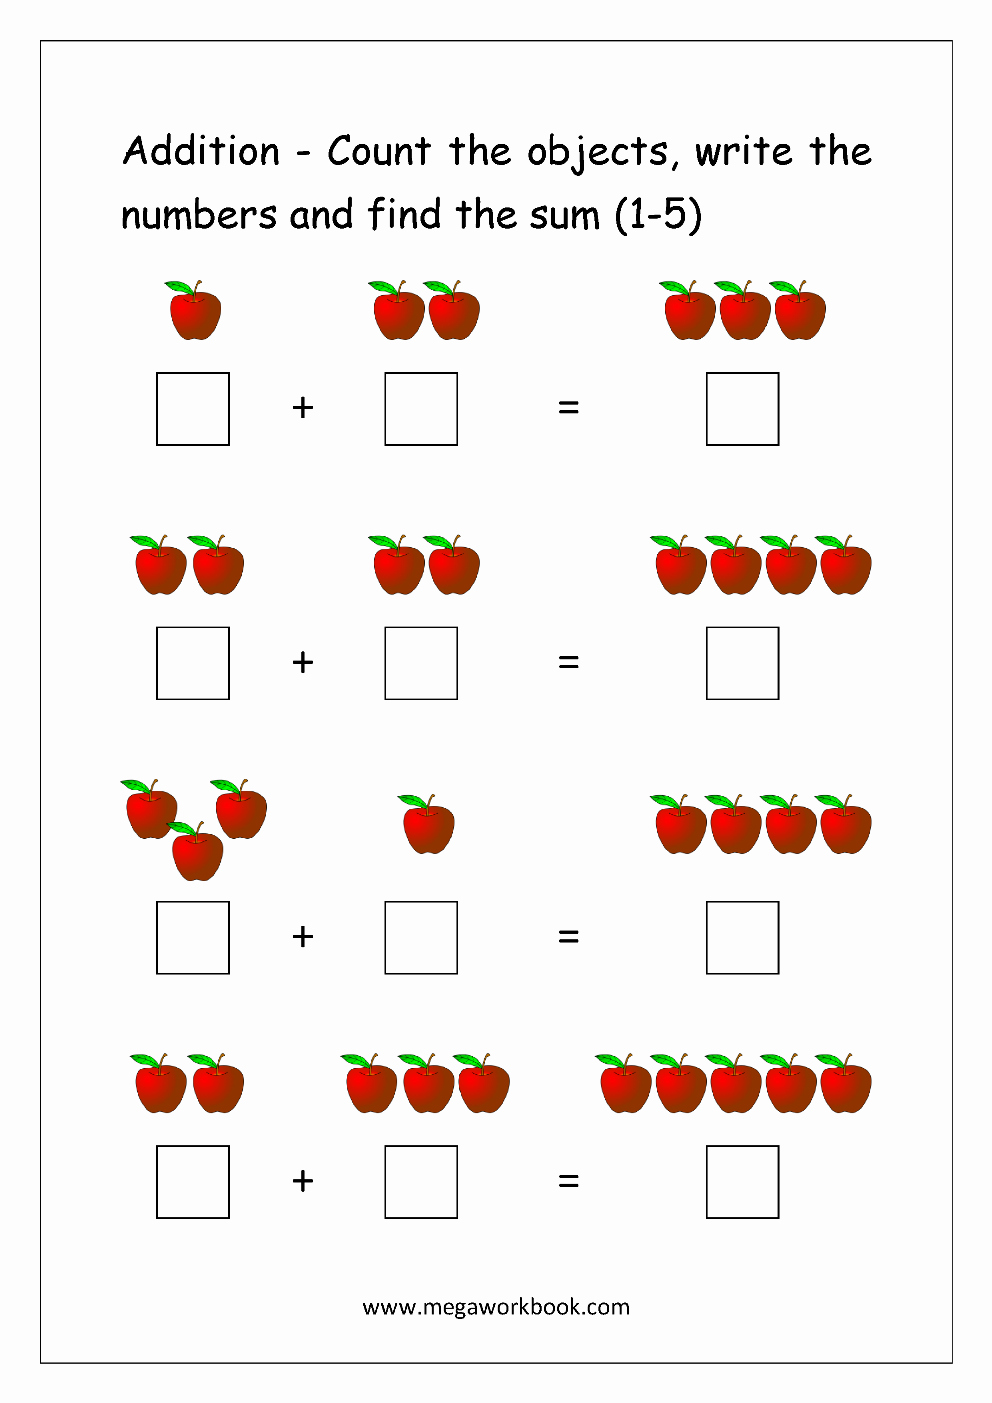 Addition Worksheets with Pictures New Free Printable Number Addition Worksheets 1 10 for